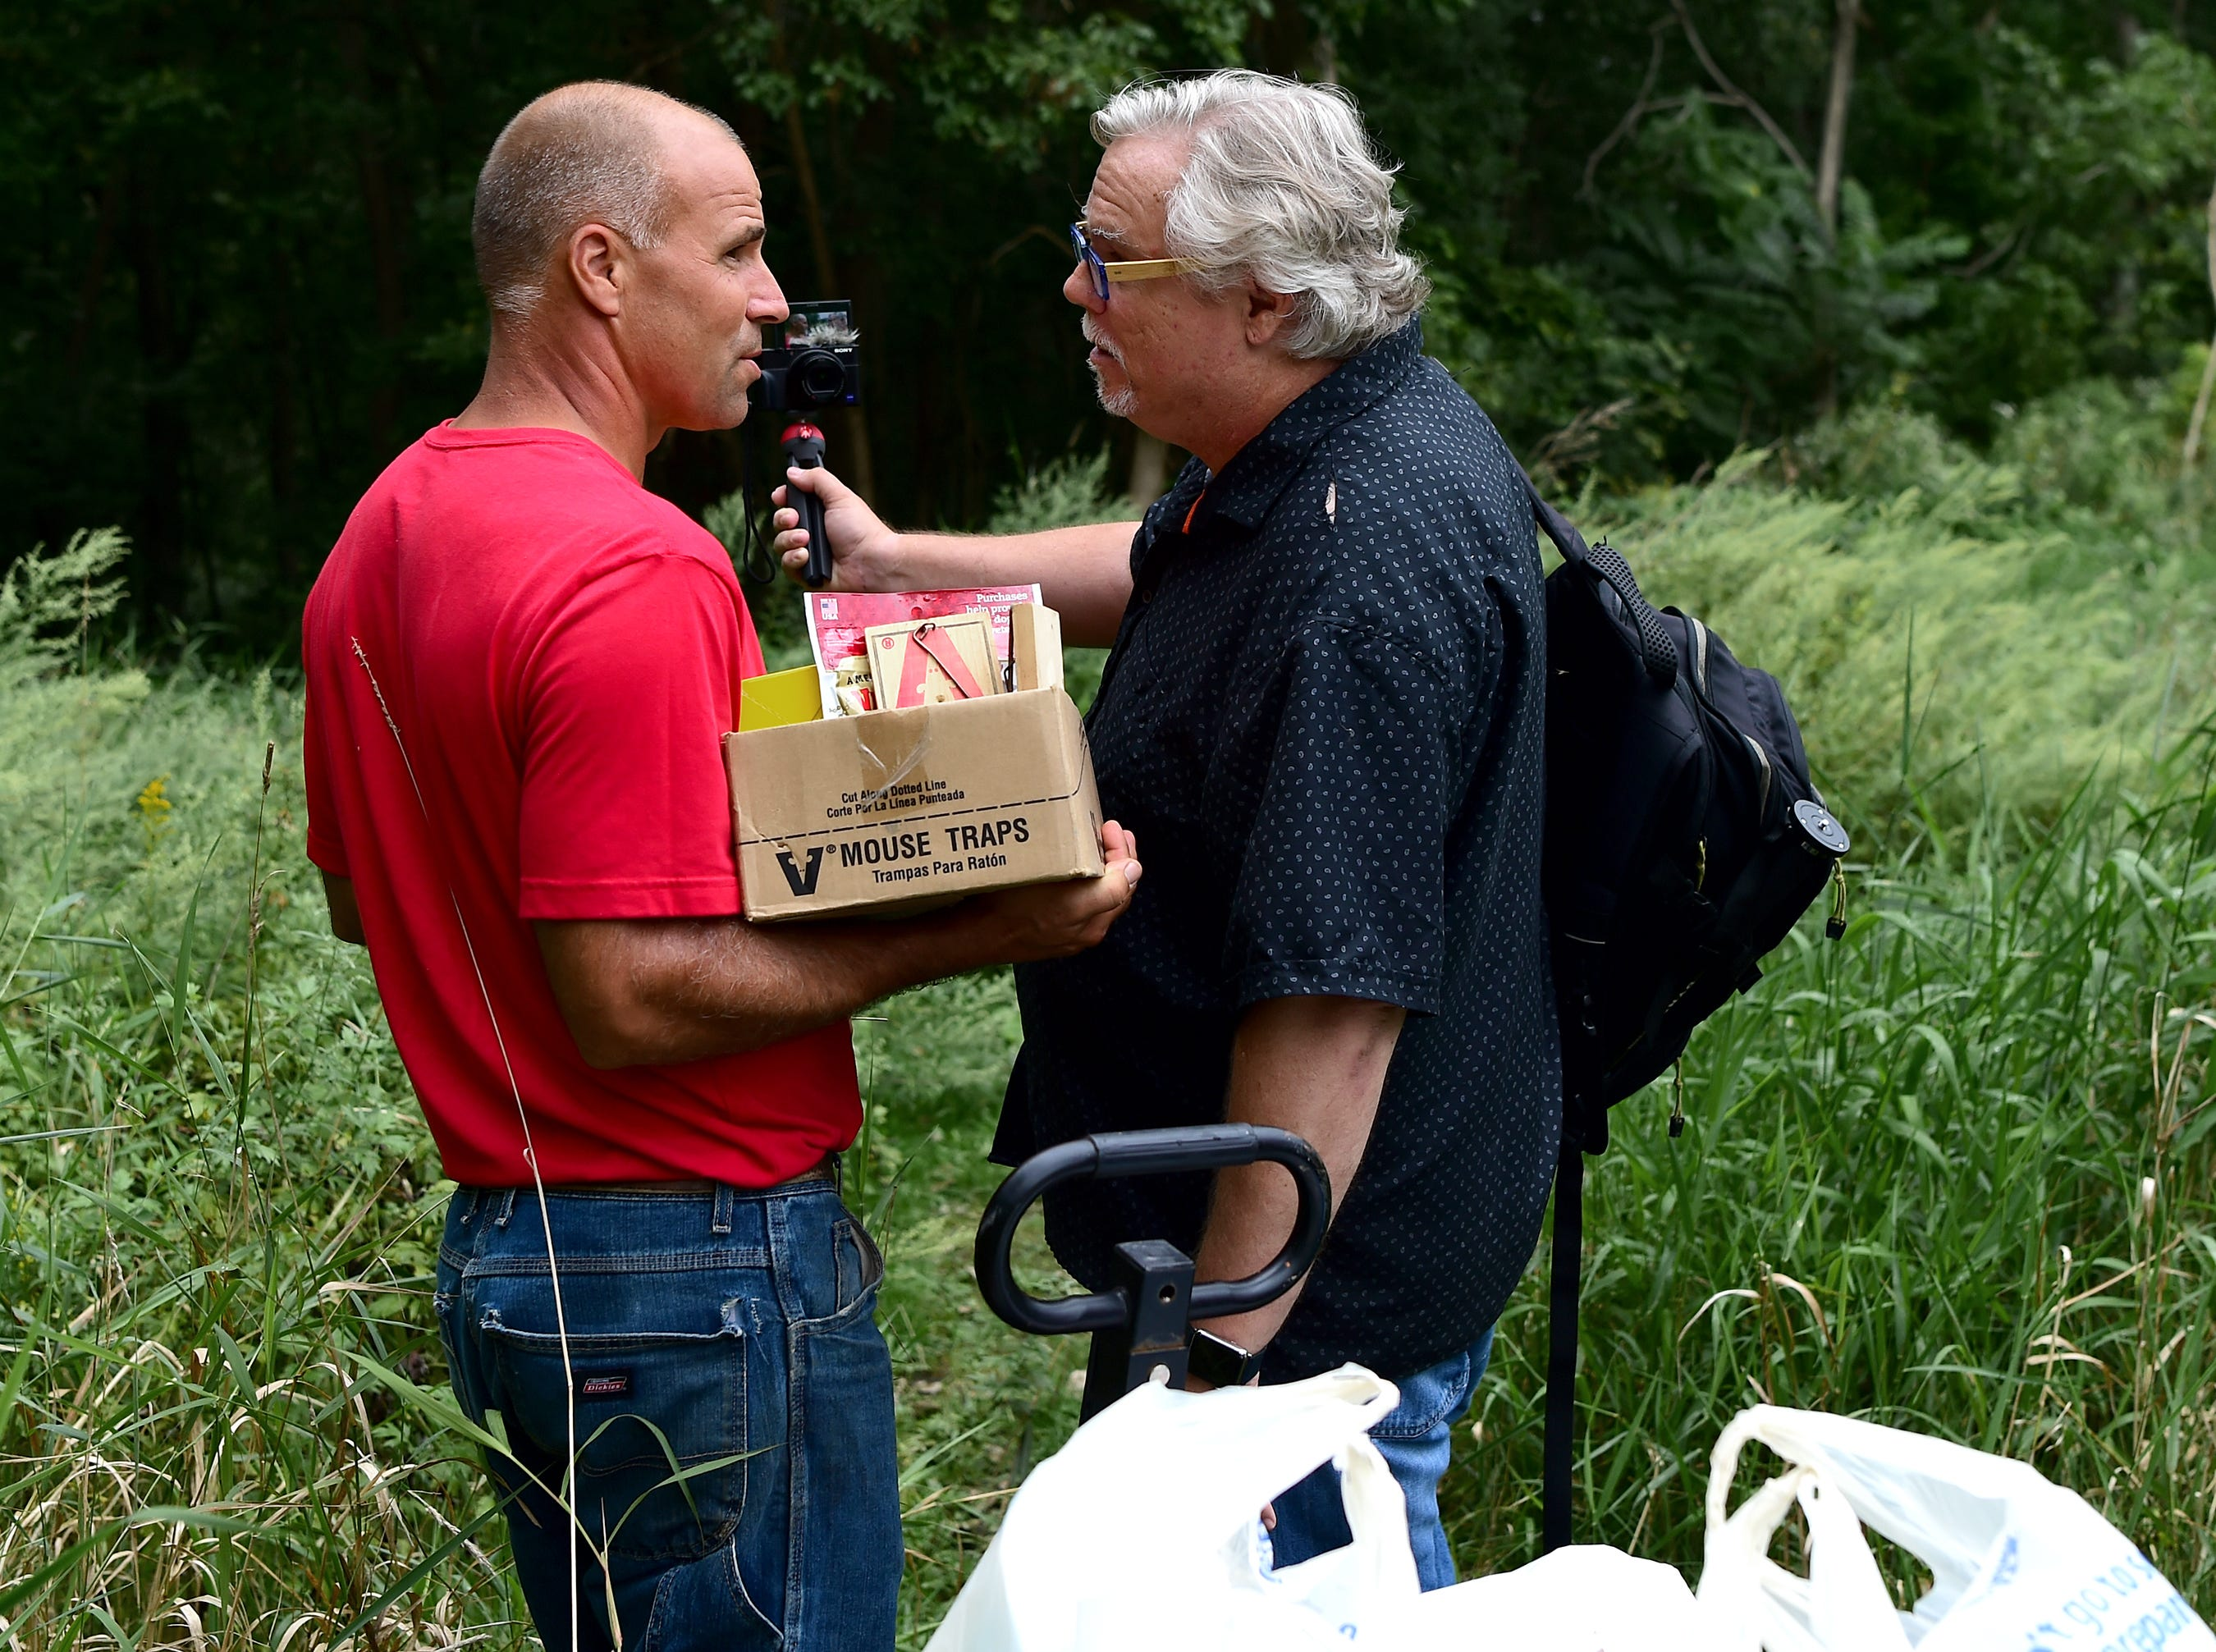 """Carmen Guidi of Newfield, right, is interviewed by Mark Horvath, left, as they deliver supplies to residents of """"The Jungle"""" in Ithaca on August 31, 2018. Horvath is the founder of Invisible People, which brings attention to homelessness worldwide."""